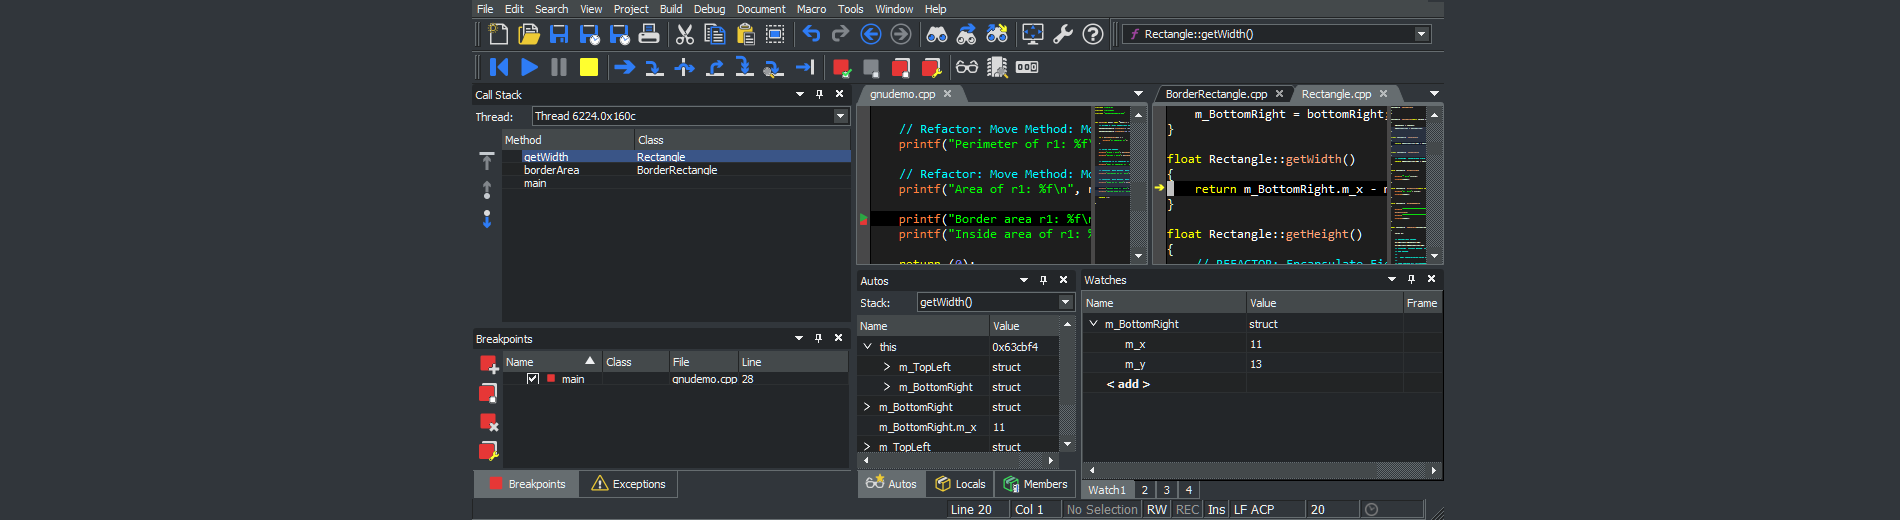 SlickEdit - The most powerful code editor available